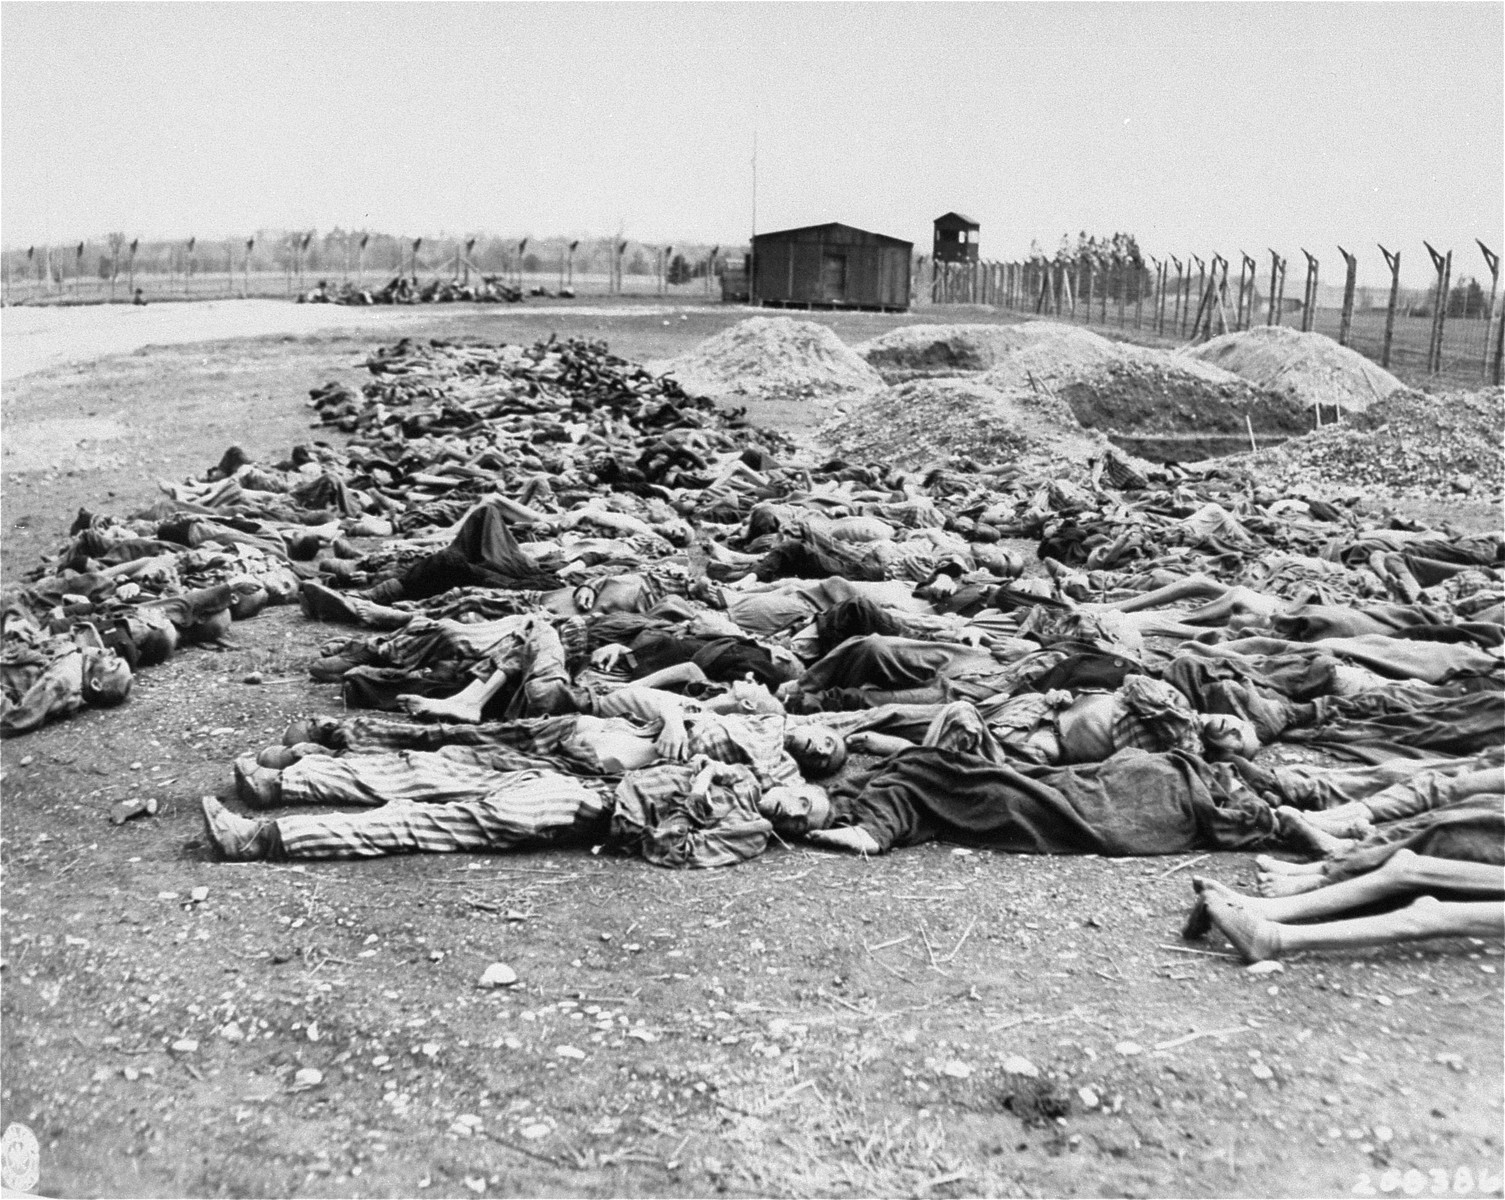 The bodies of Jewish prisoners who were killed at the Hurlach concentration camp, lie outside in rows near freshly dug mass graves alongside the barbed wire fence.